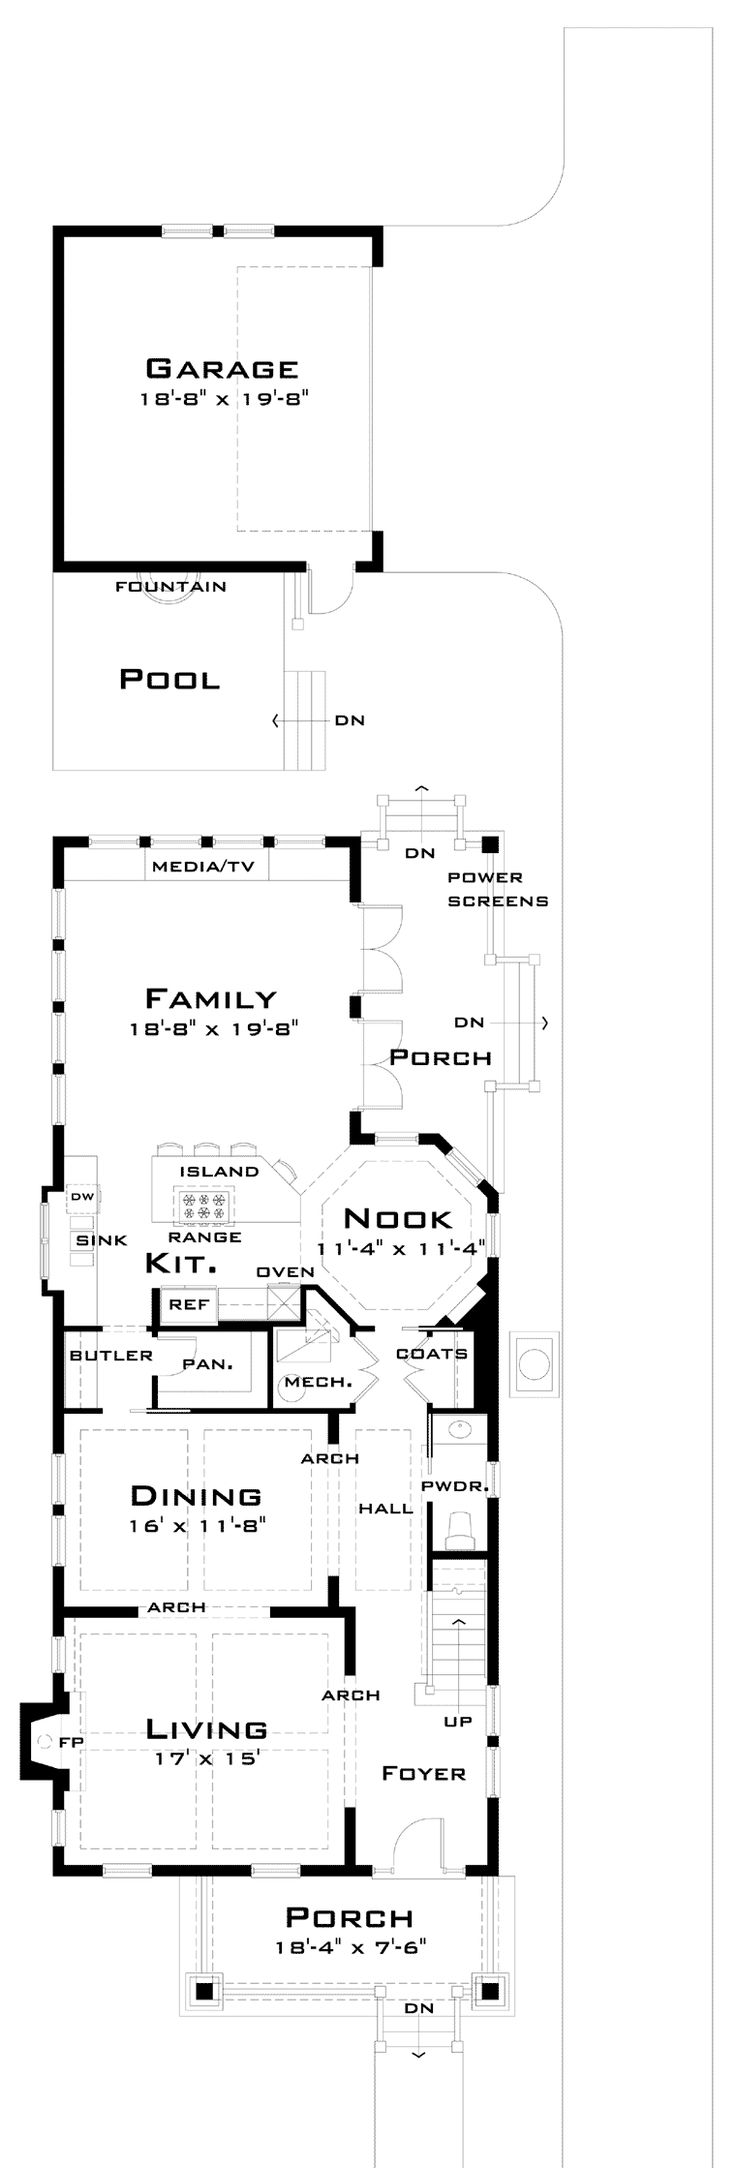 First floor plan of narrow lot house plan 67538 narrow lot plan idea